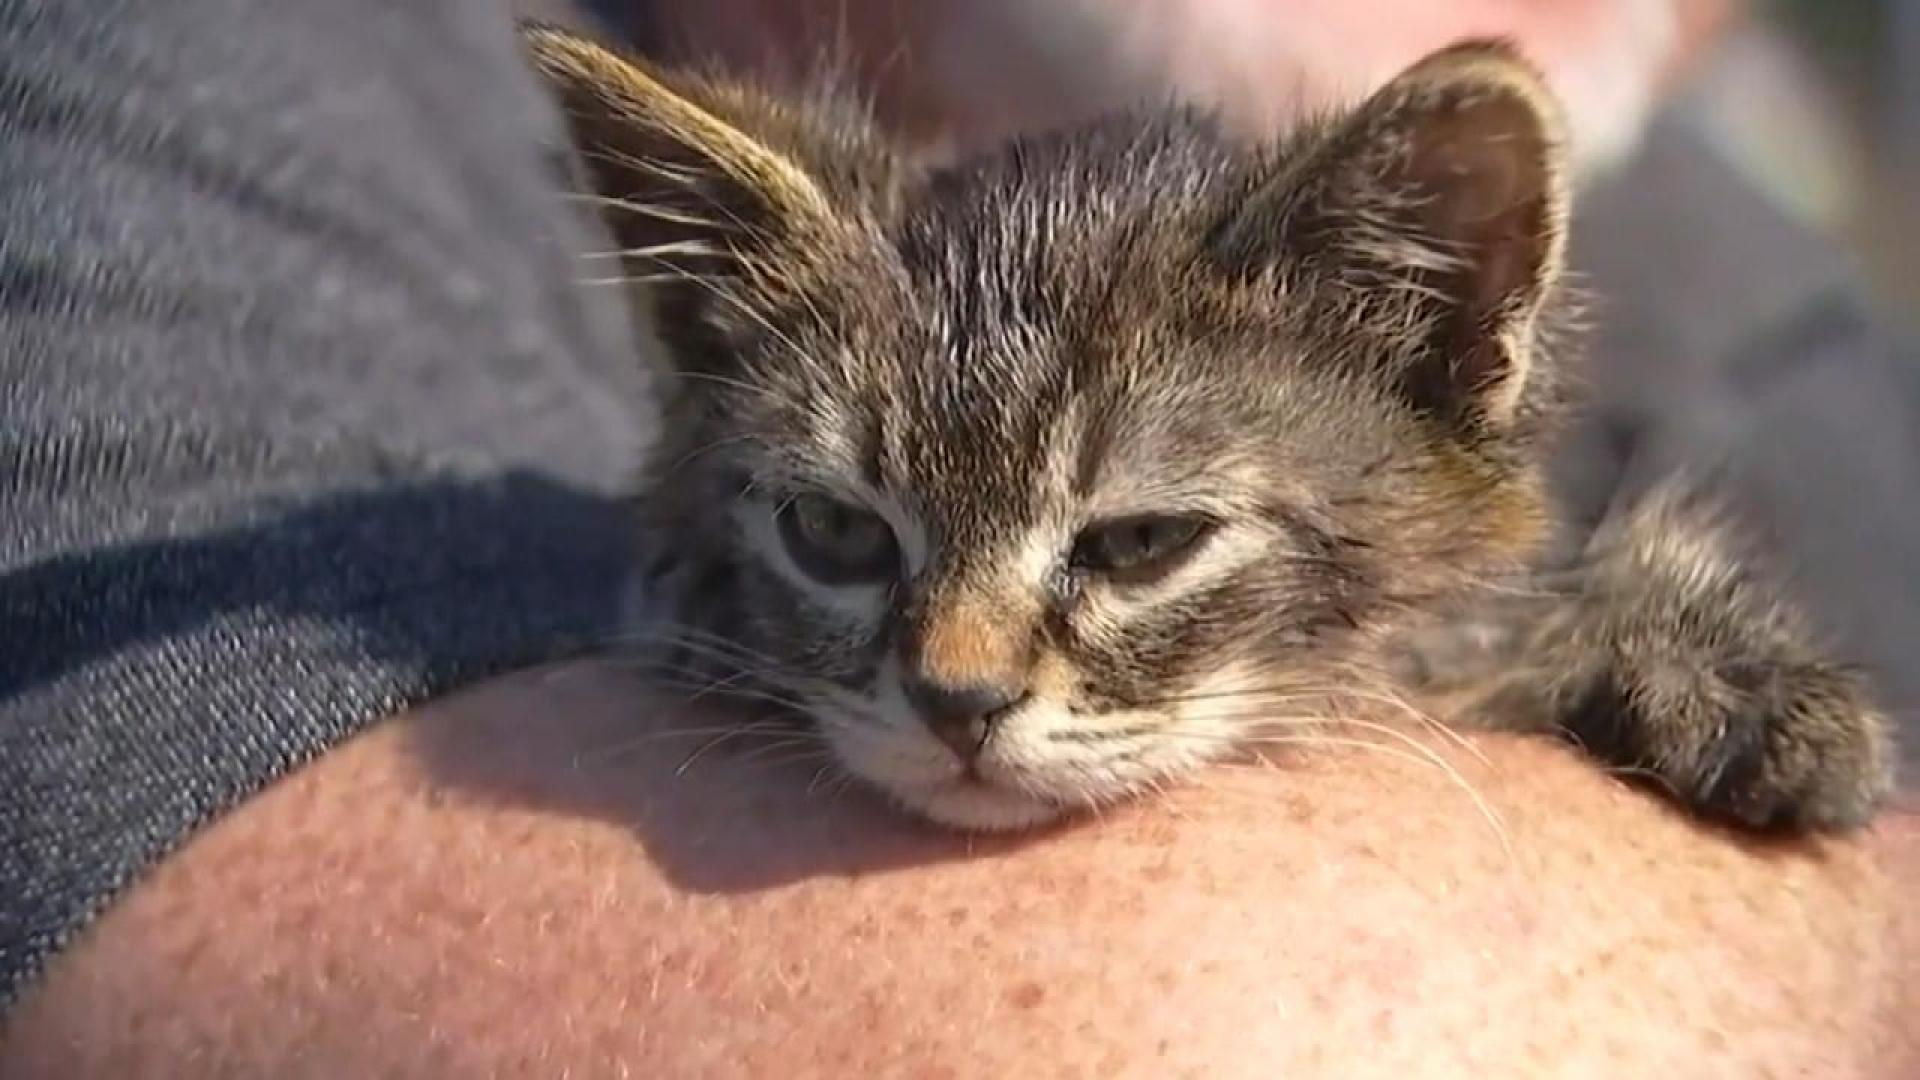 5 Week Old Kitten Named Sticky Found Glued To Busy Oregon Road Inside Edition